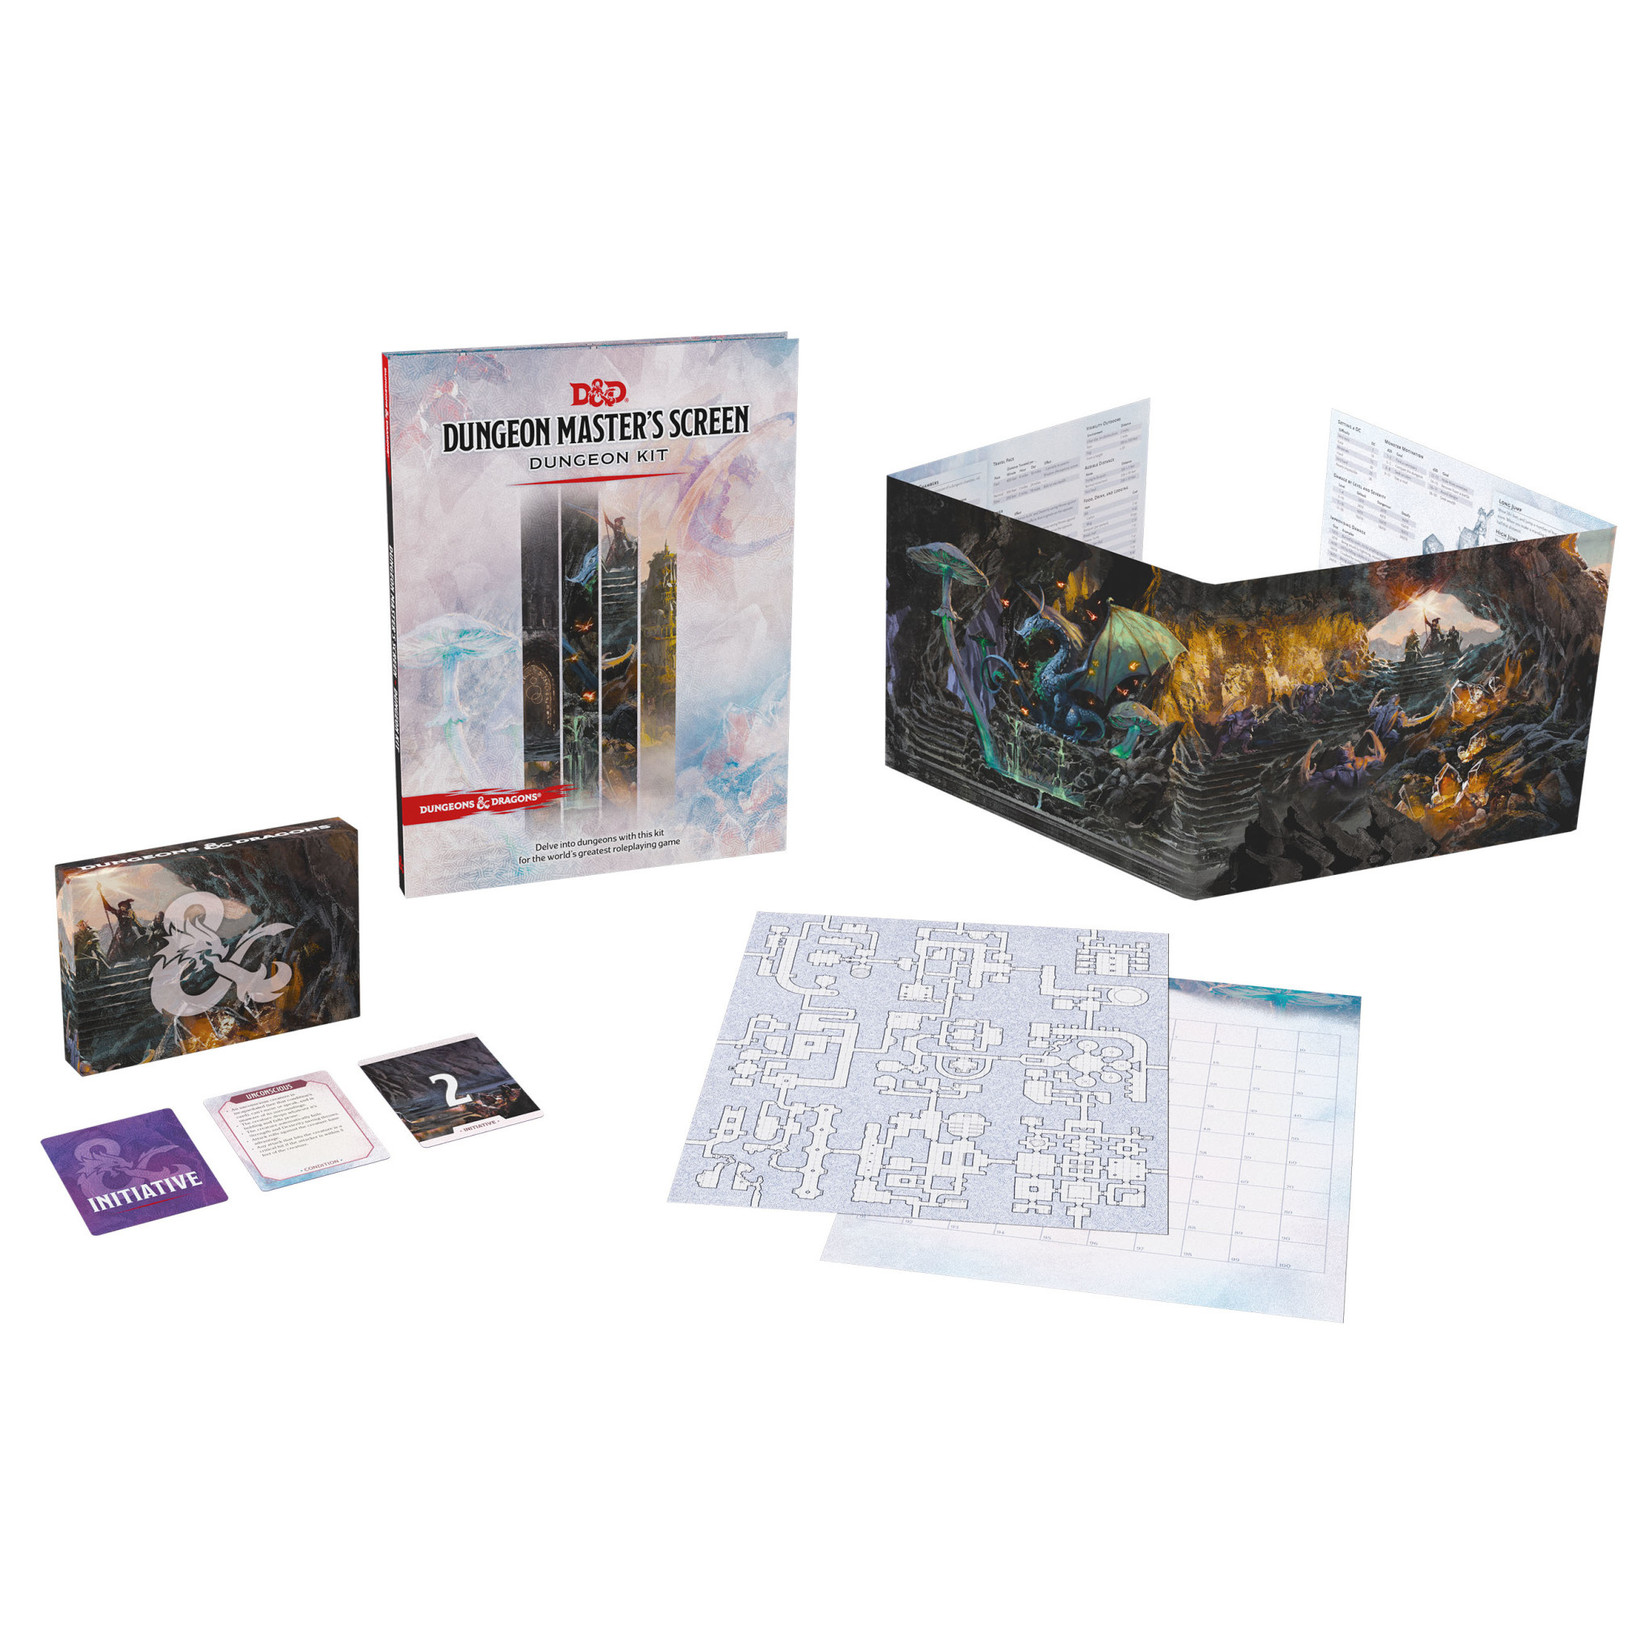 Dungeons & Dragons Dungeons & Dragons 5th Edition: Dungeon Master's Screen: Dungeon Kit